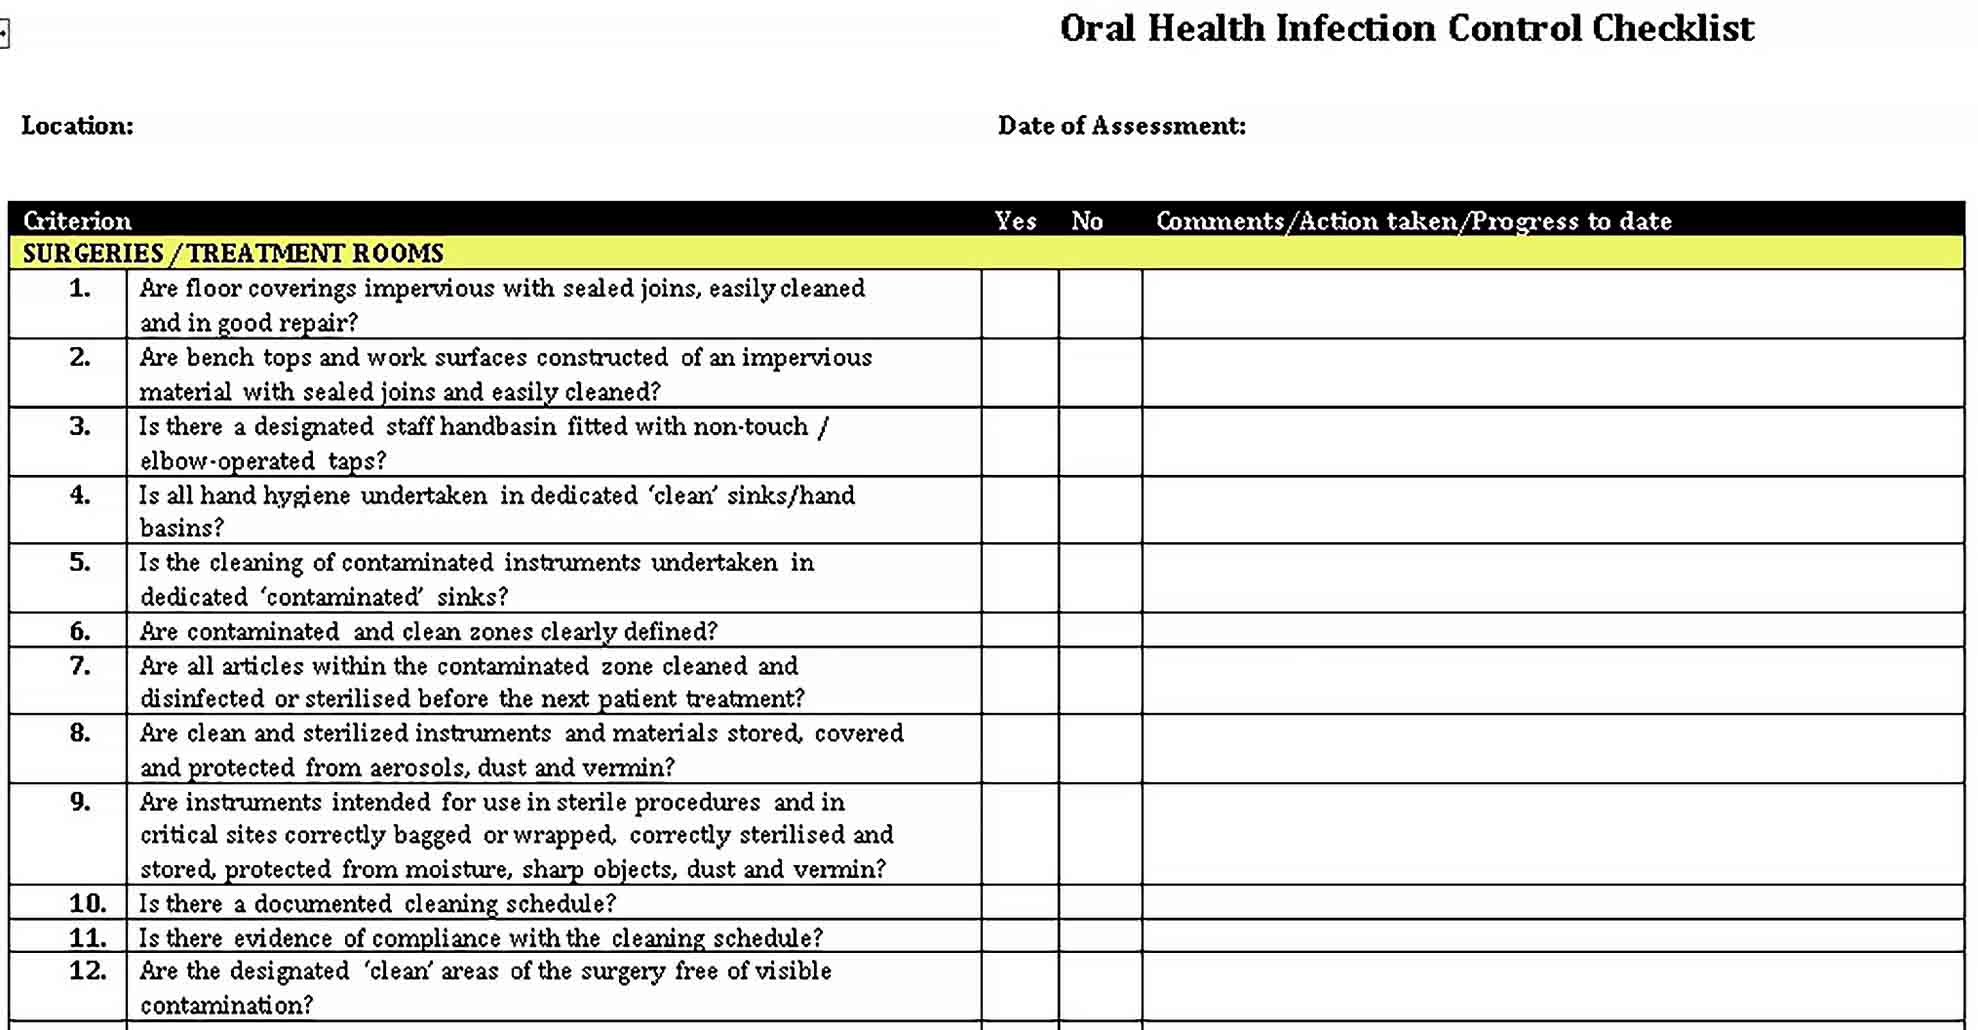 Template Oral Health Infection Control Checklist Template